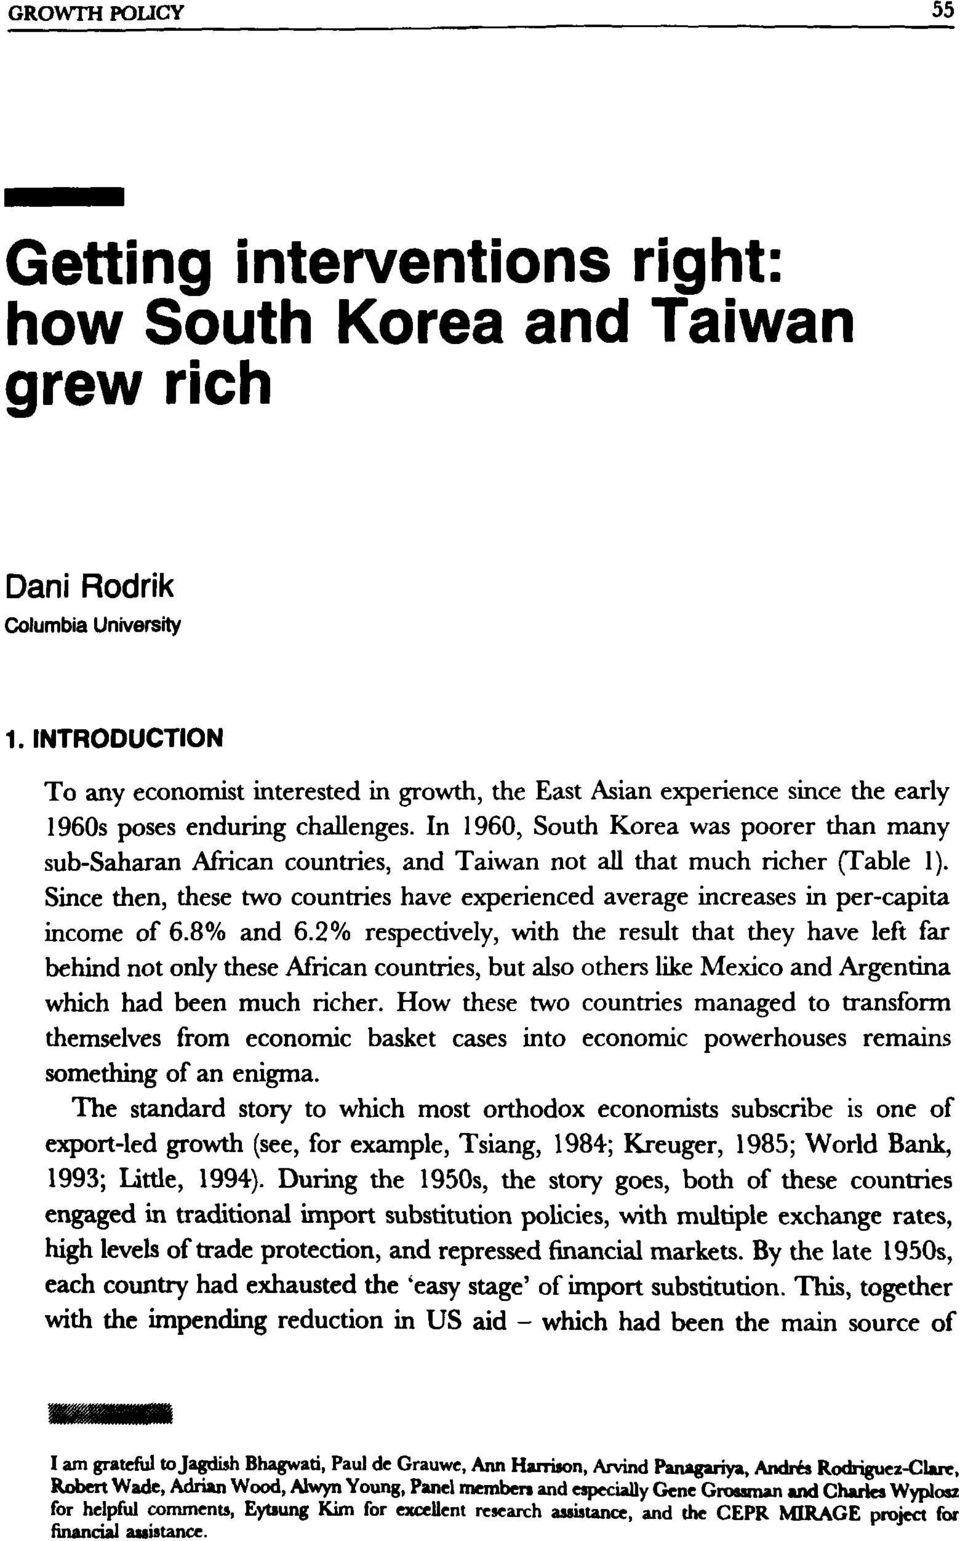 In 1960, South Korea was poorer than many sub-saharan African countries, and Taiwan not all that much richer (Table 1).